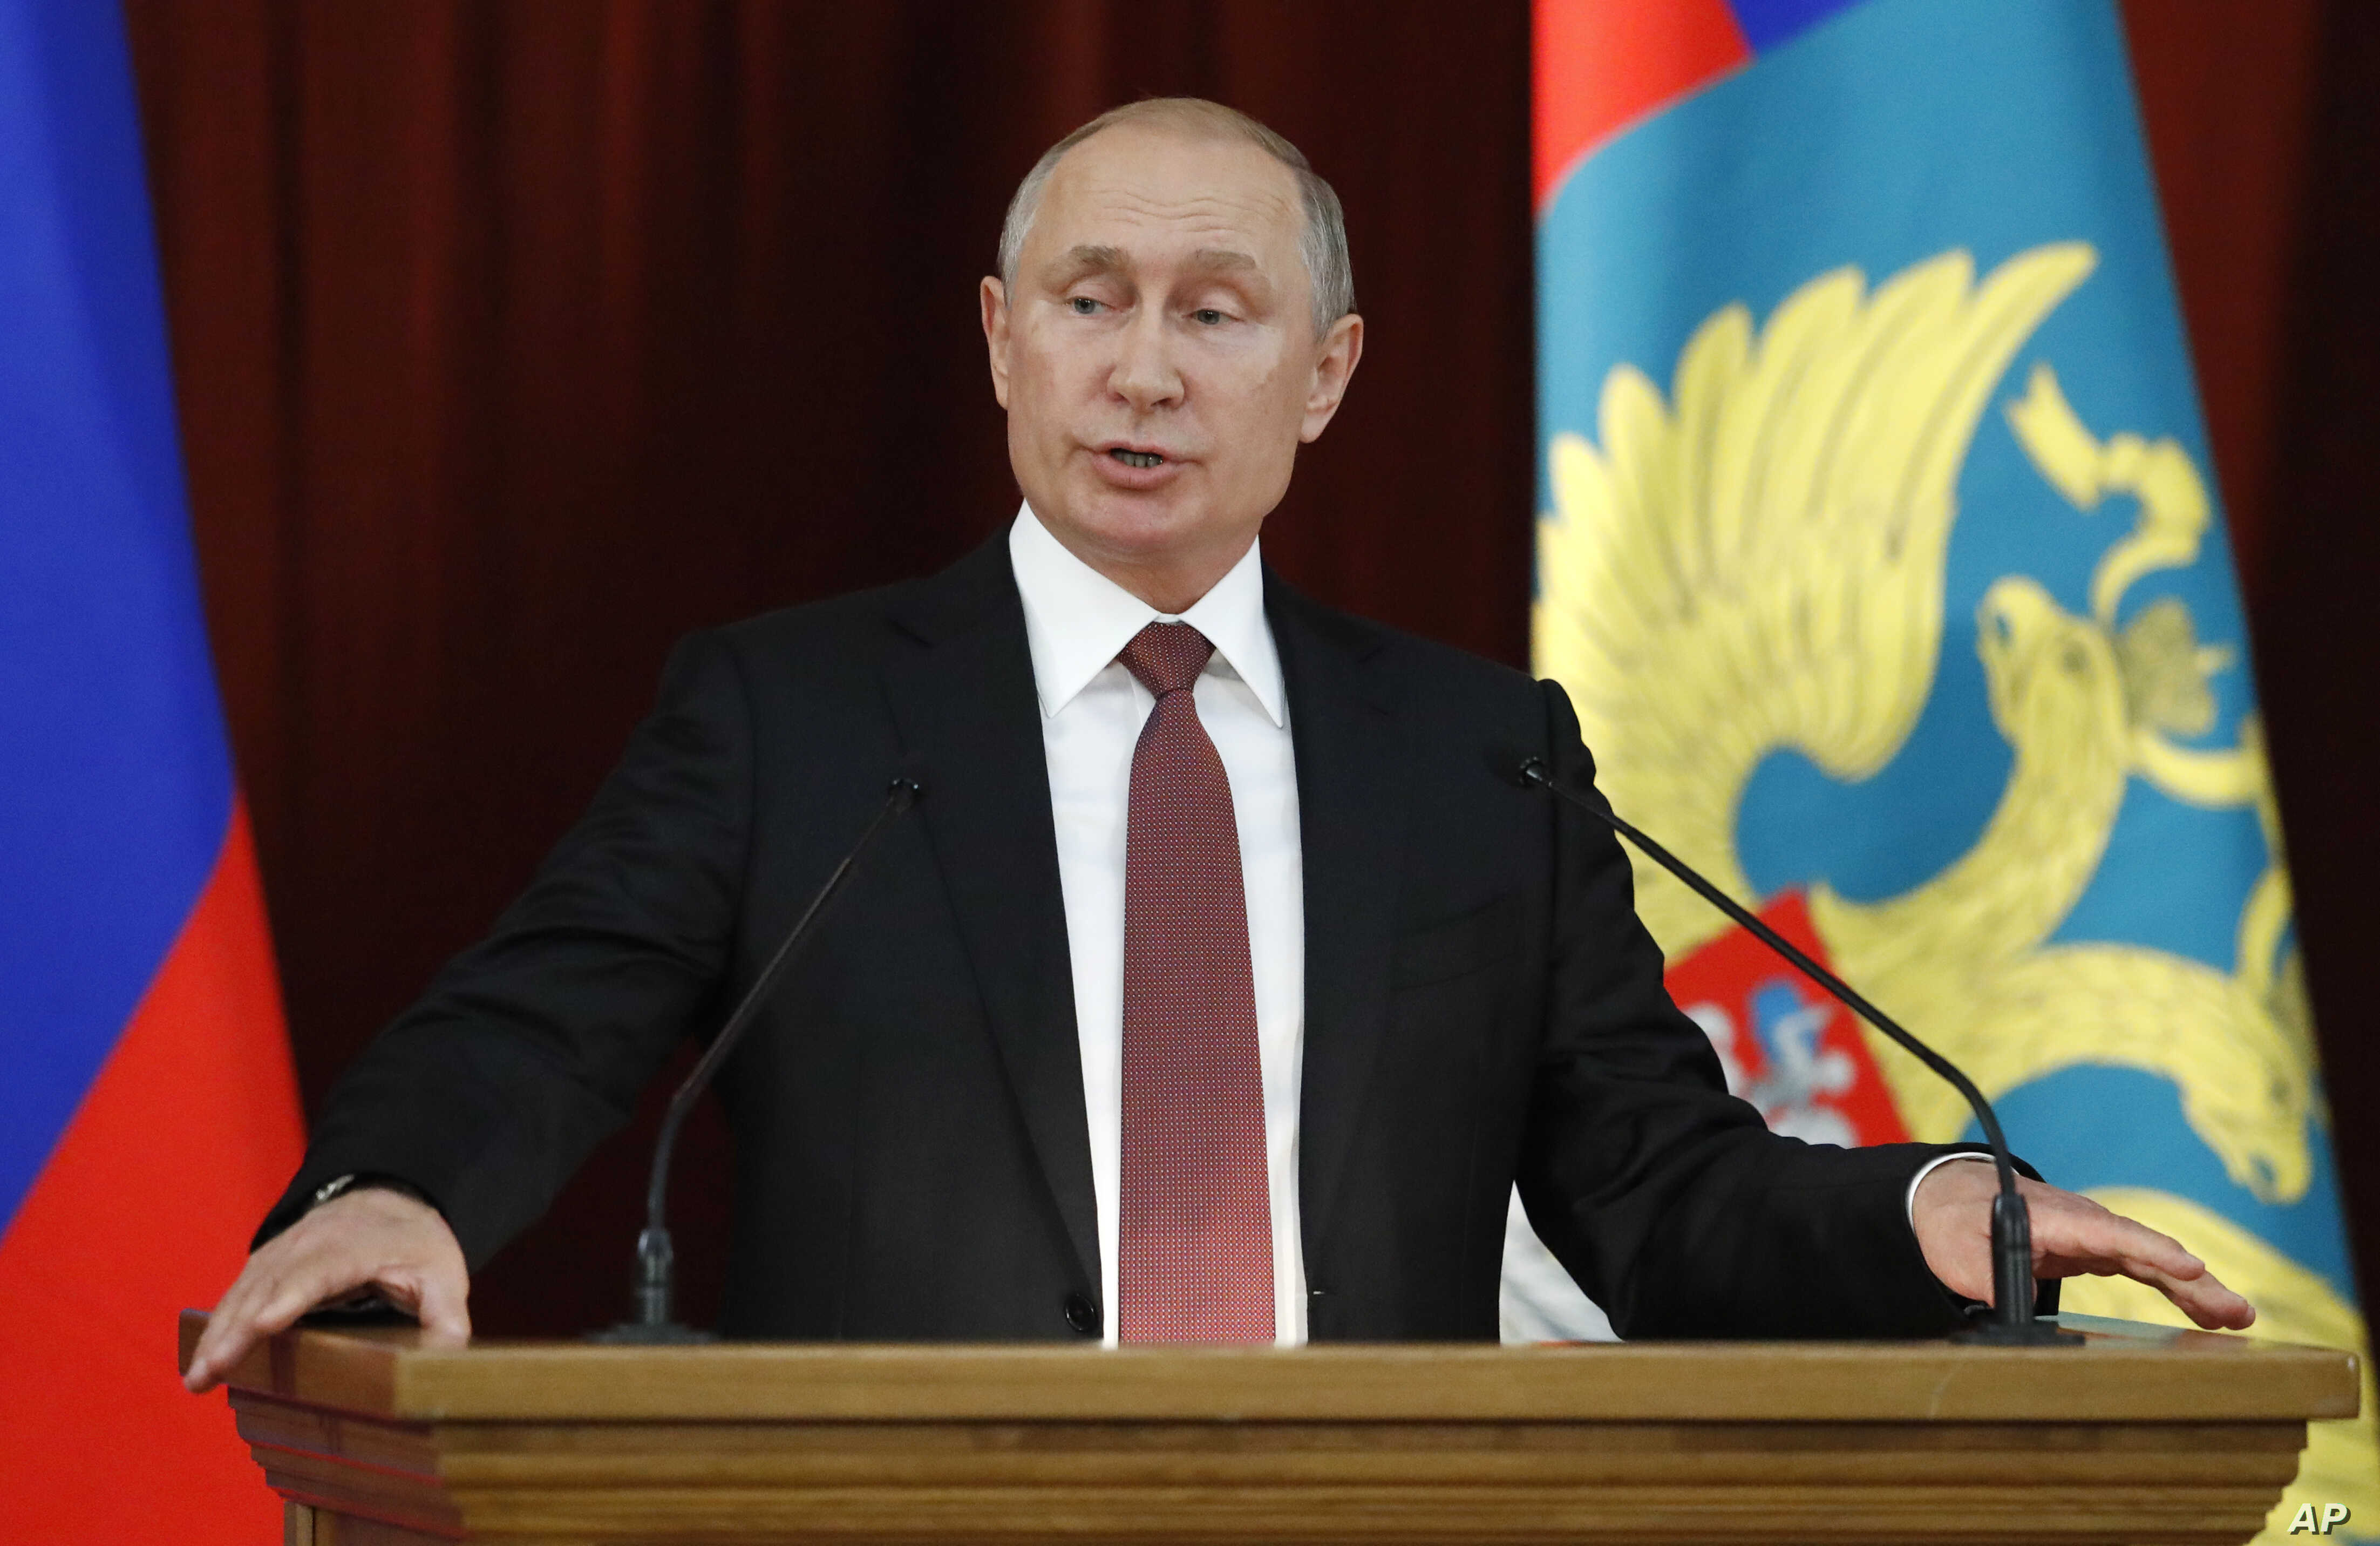 Russian Vladimir Putin speaks during a meeting with Russian ambassadors to foreign countries in Moscow, July 19, 2018.